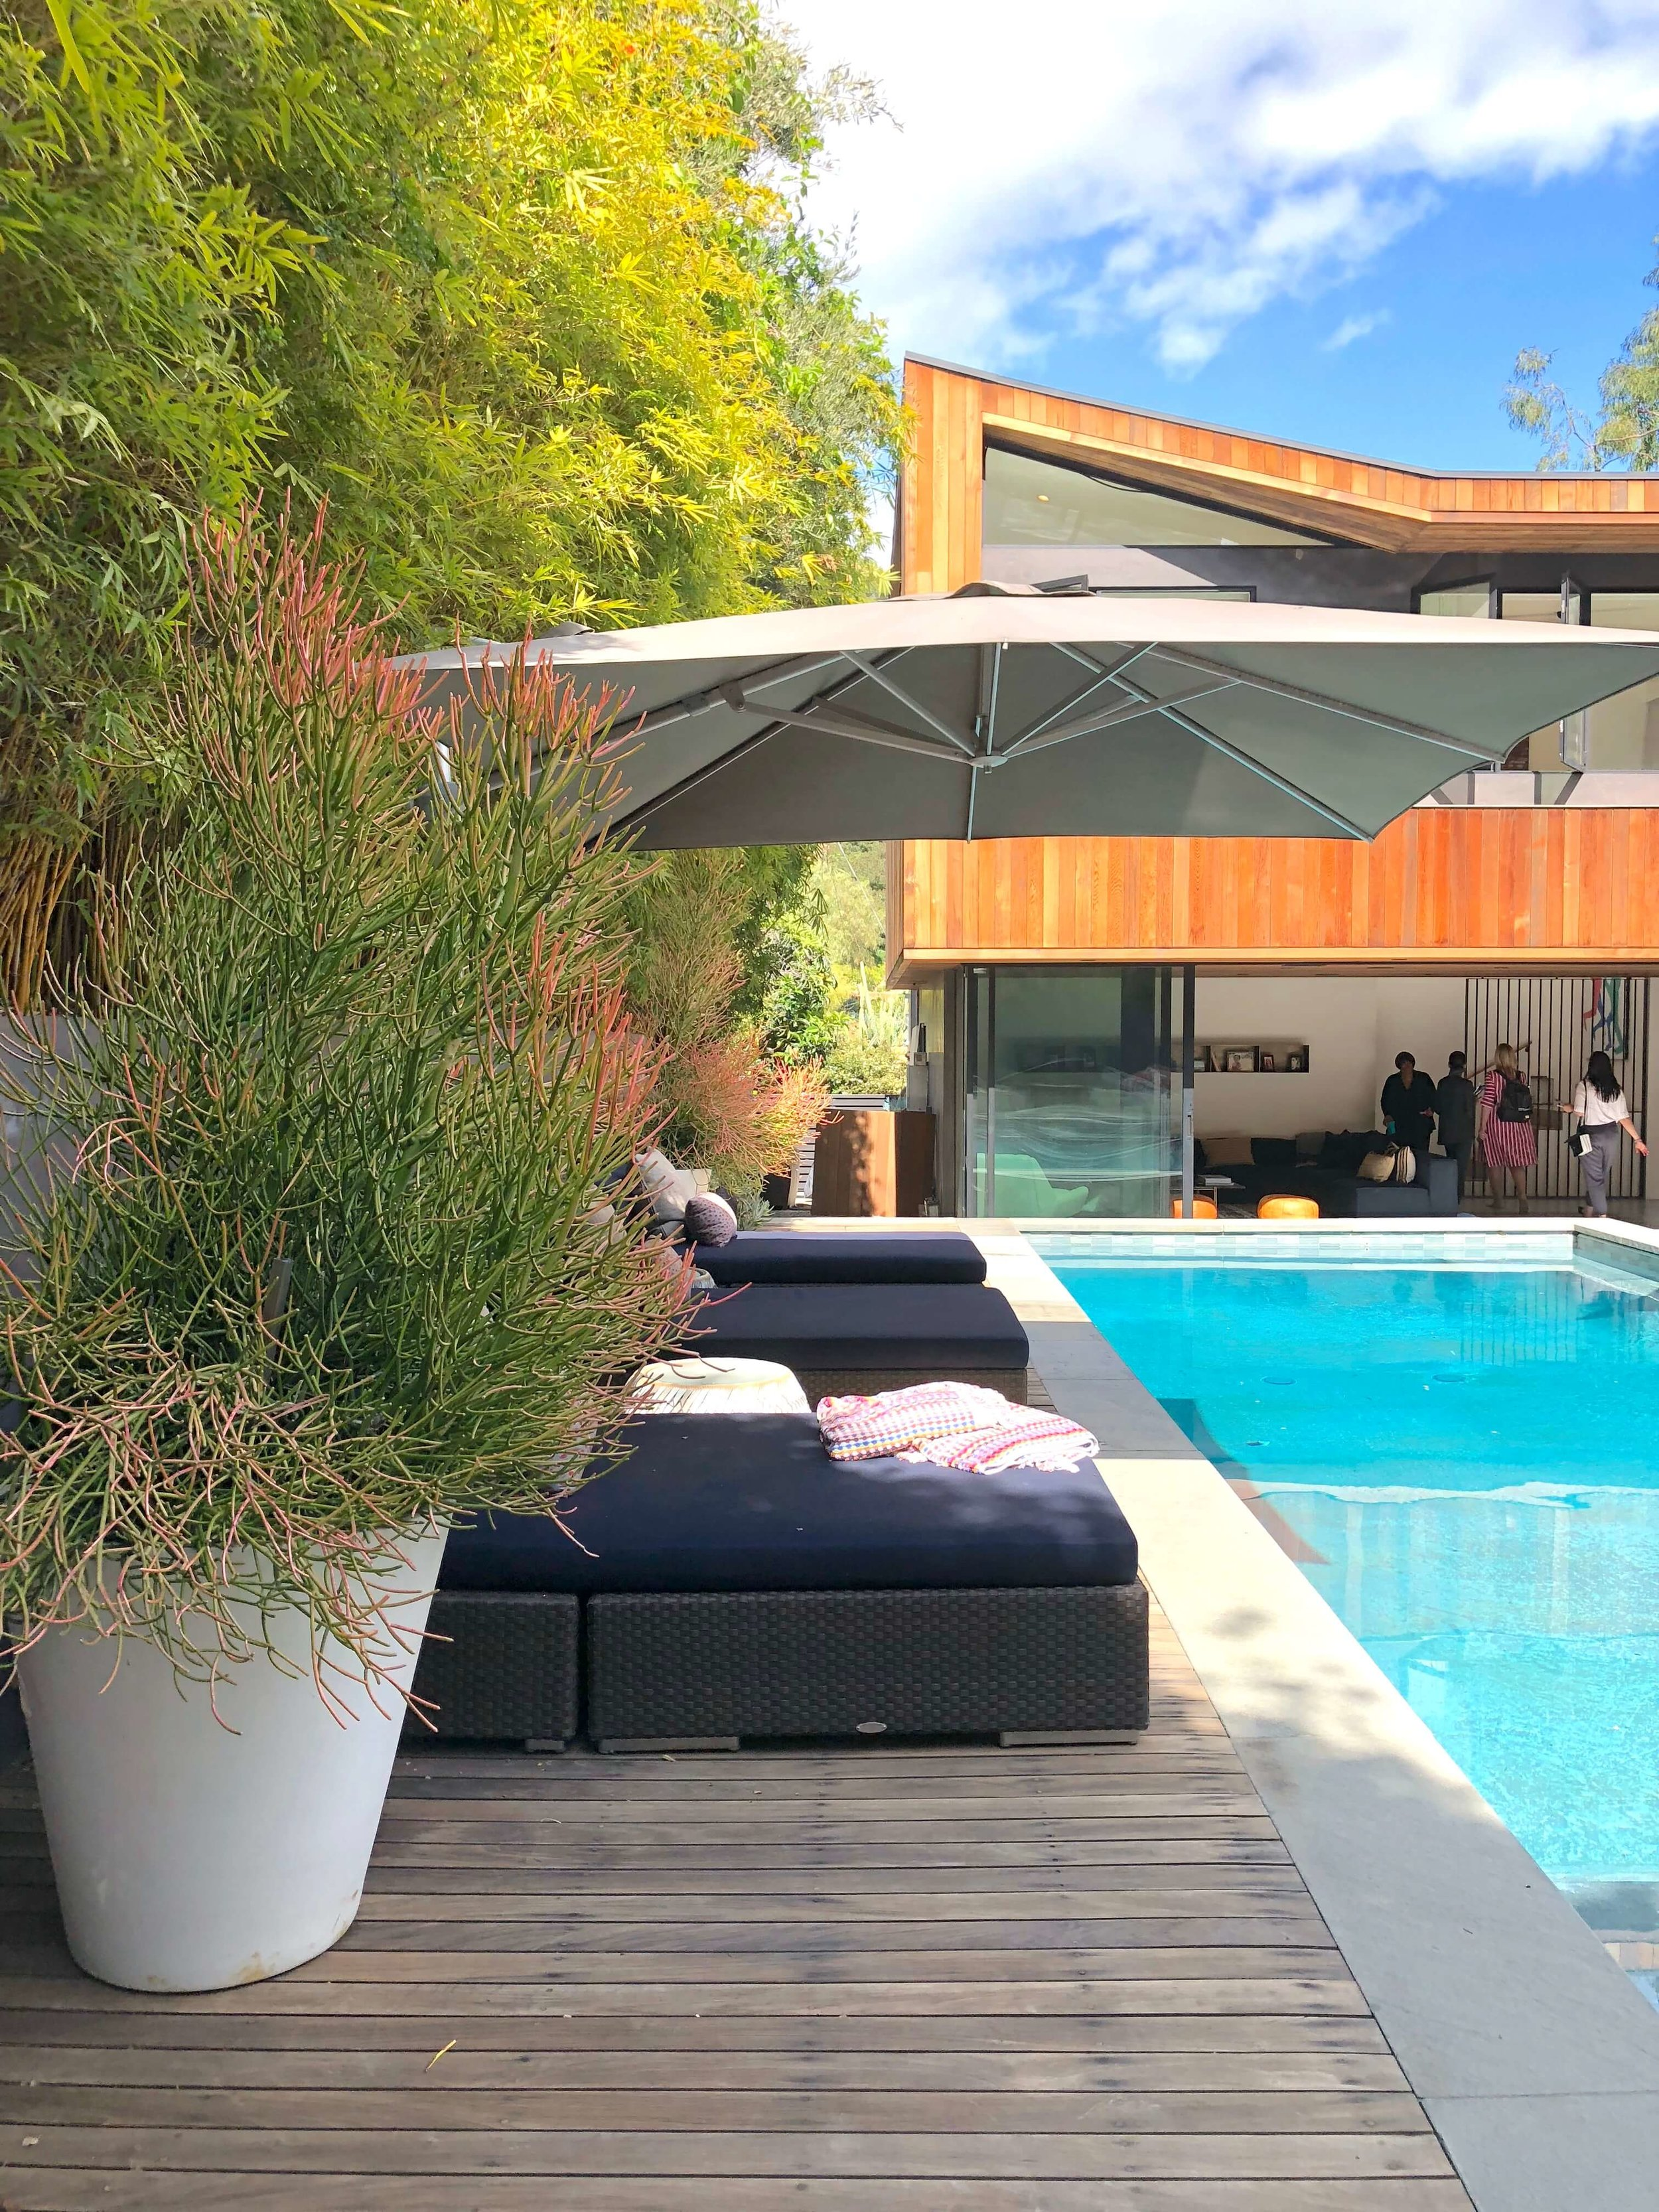 Back garden exterior view - Assembledge+ Architects, Dwell on Design, Los Angeles, California   #backyardideas #pool #swimmingpool #swimmingpooldesign